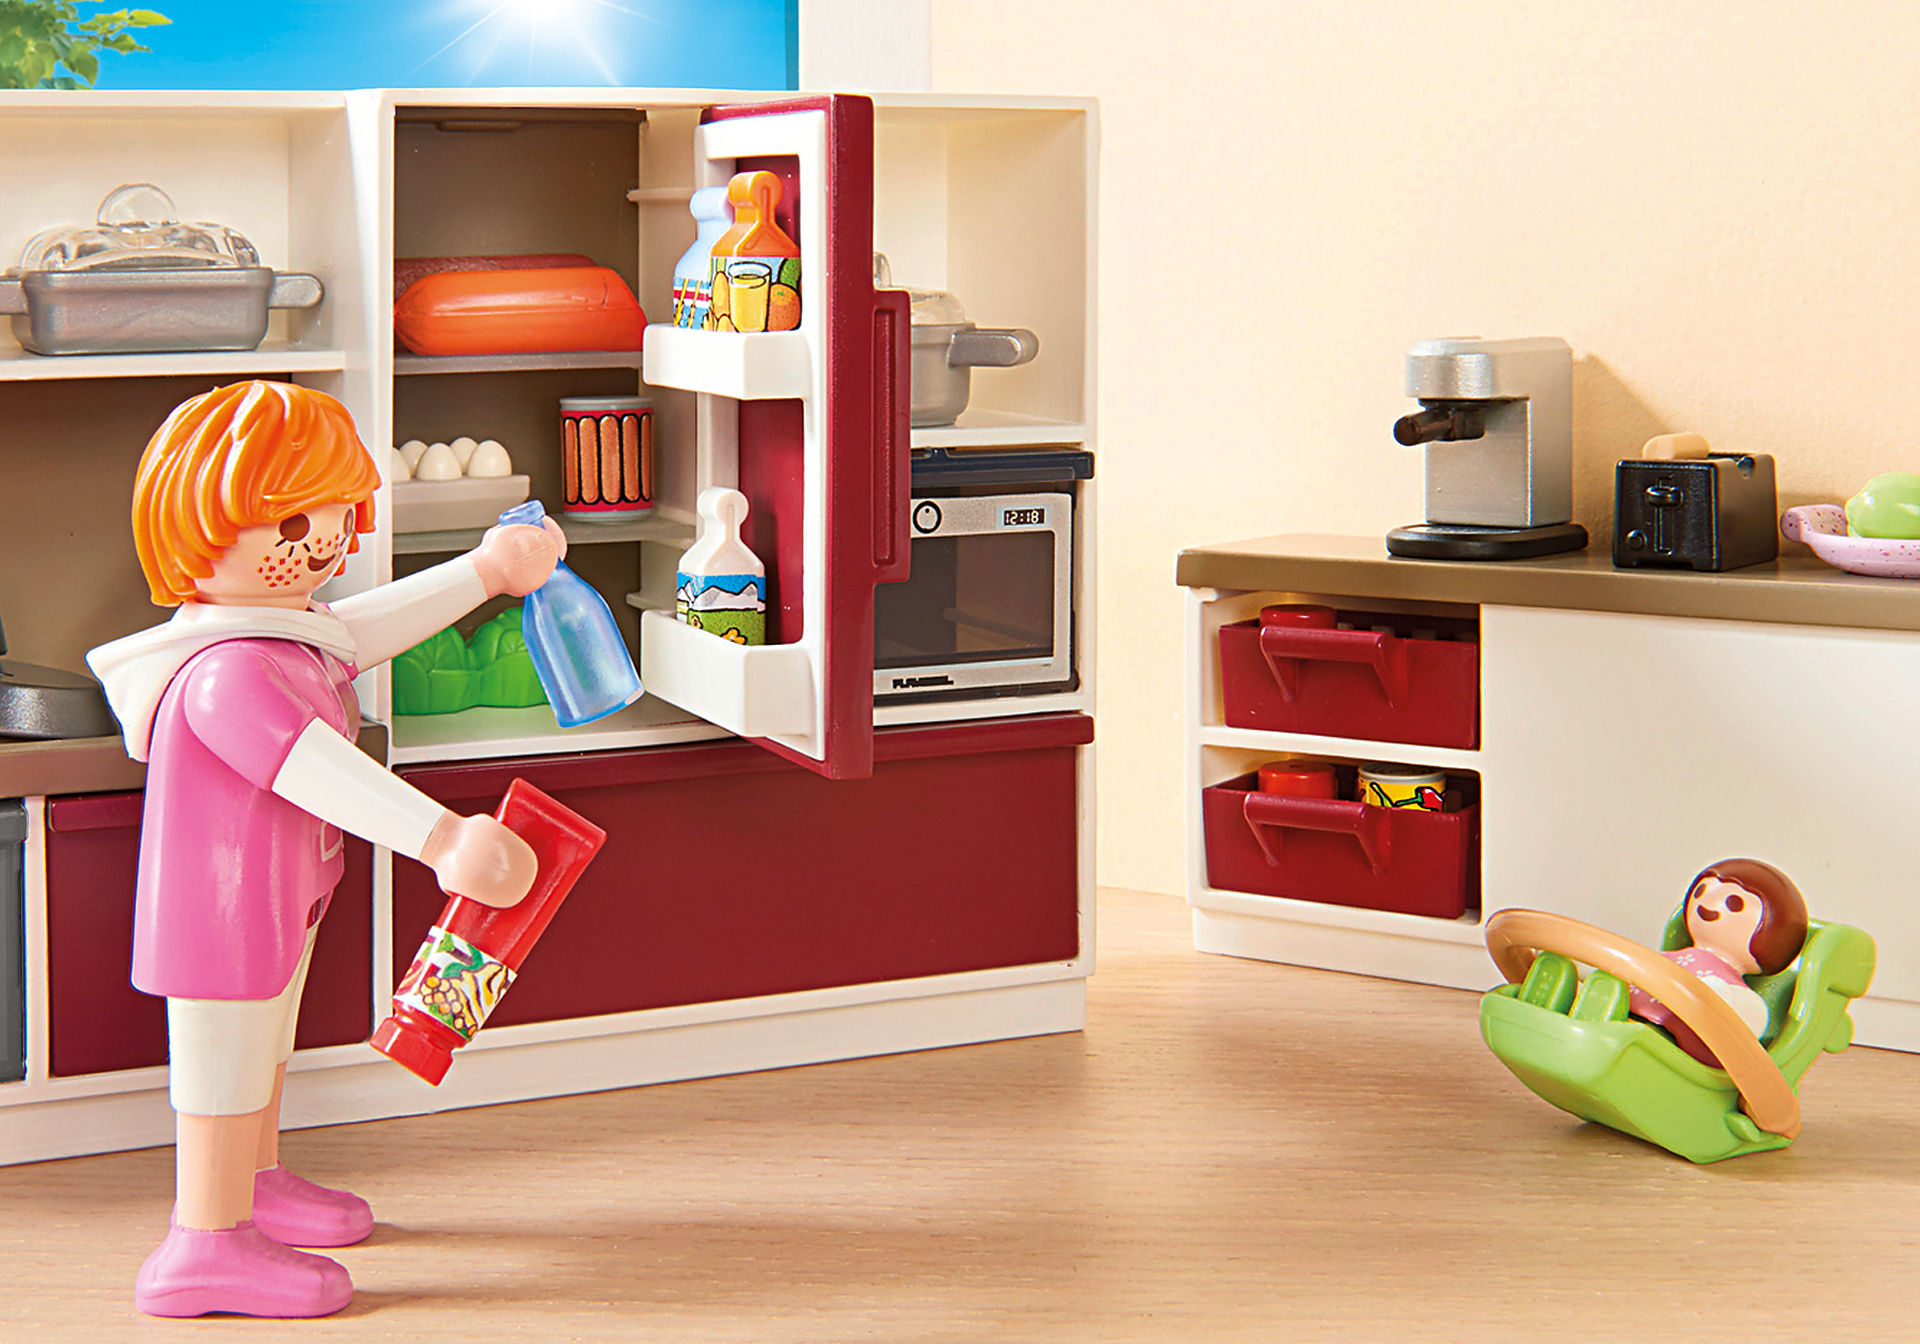 http://media.playmobil.com/i/playmobil/9269_product_extra3/Große Familienküche